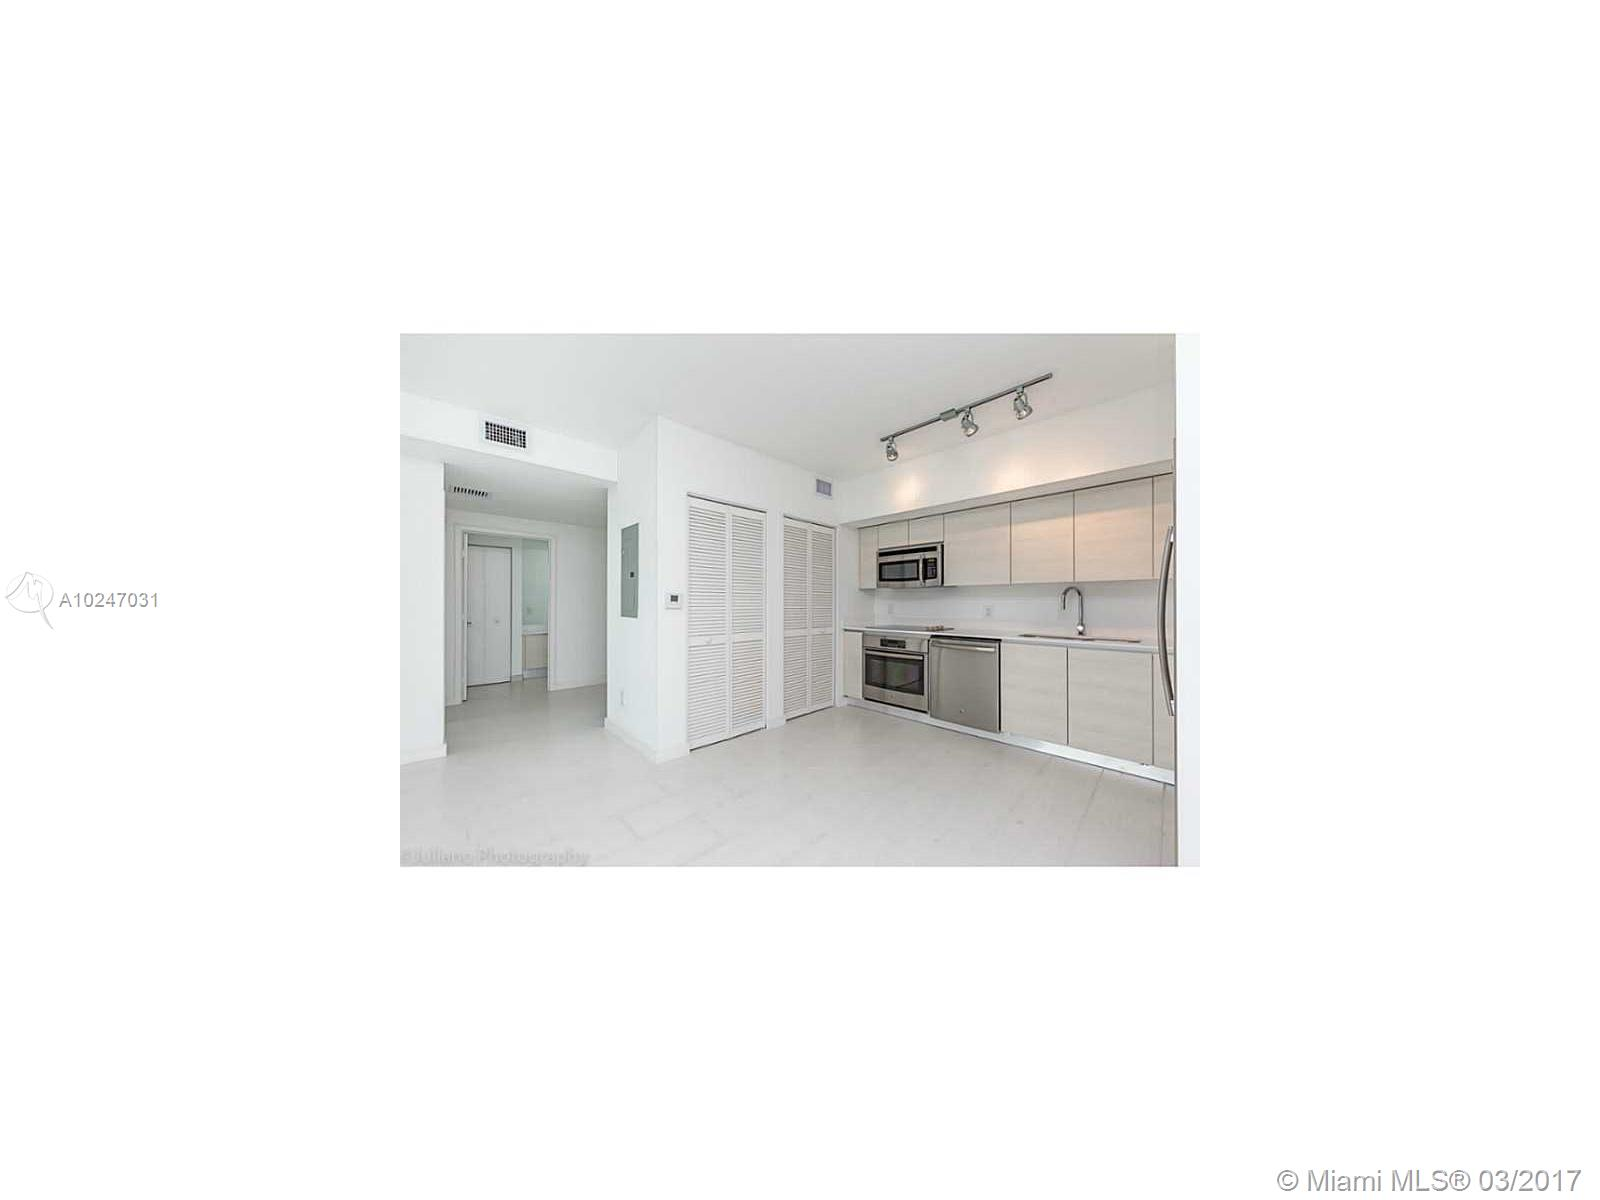 Baltus House #509 - 4250 BISCAYNE BLVD #509, Miami, FL 33137